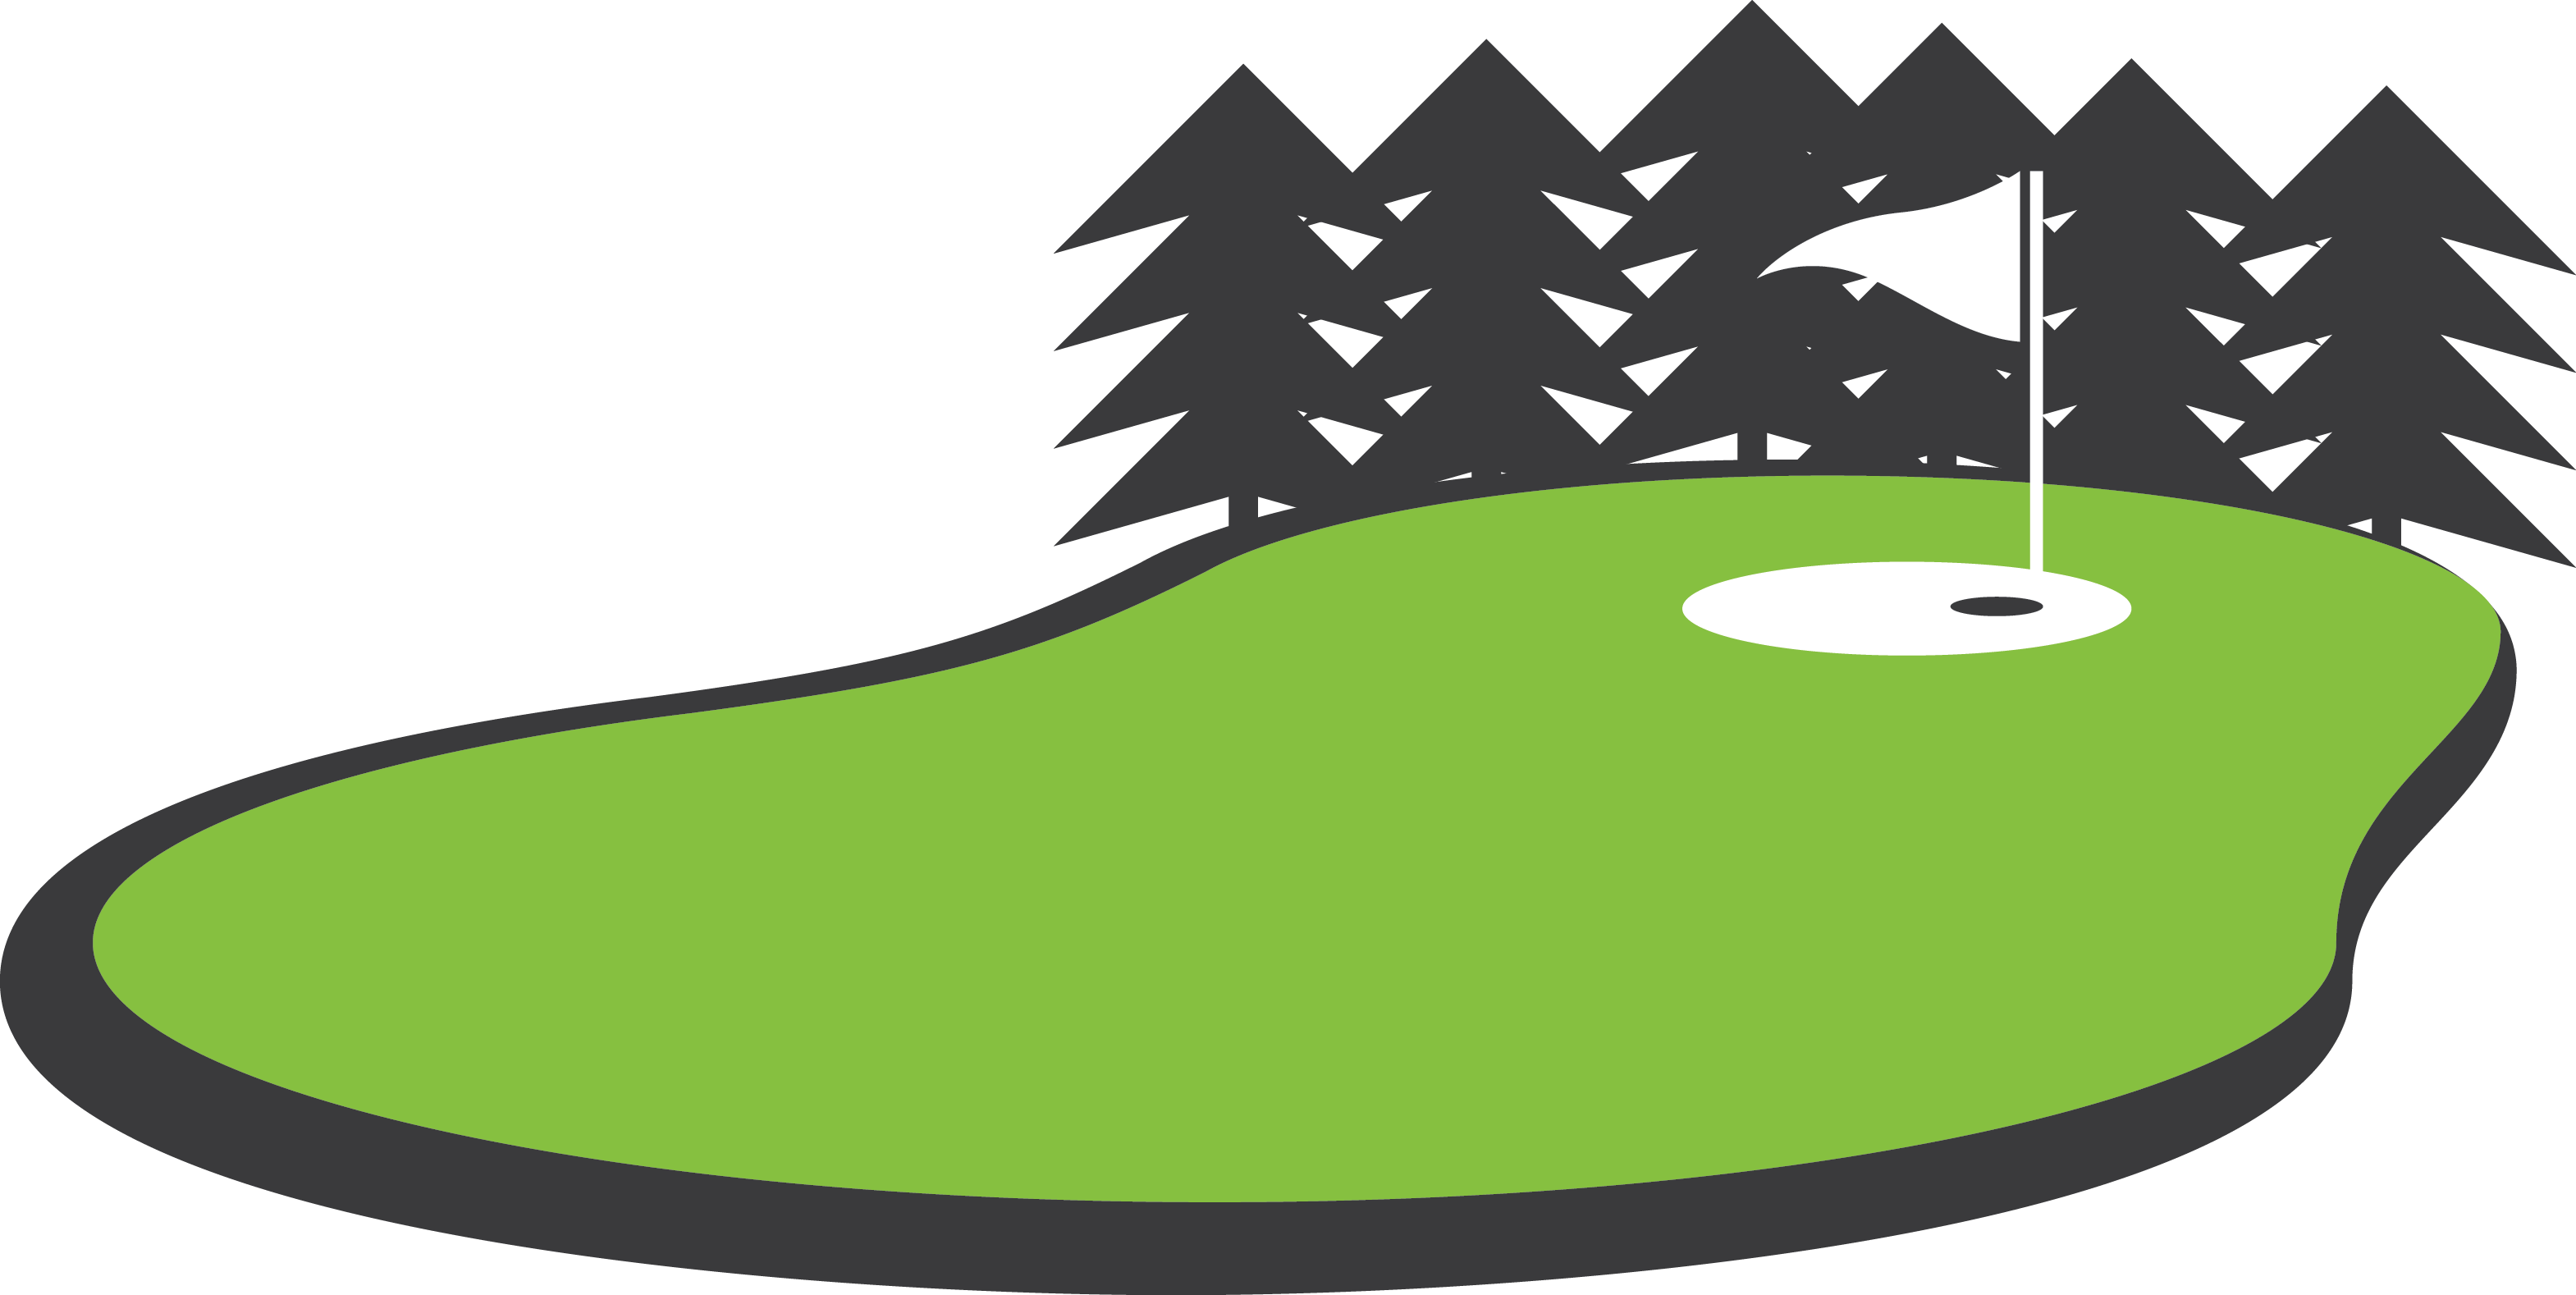 Golfing clipart golf winner. How to play fantasy